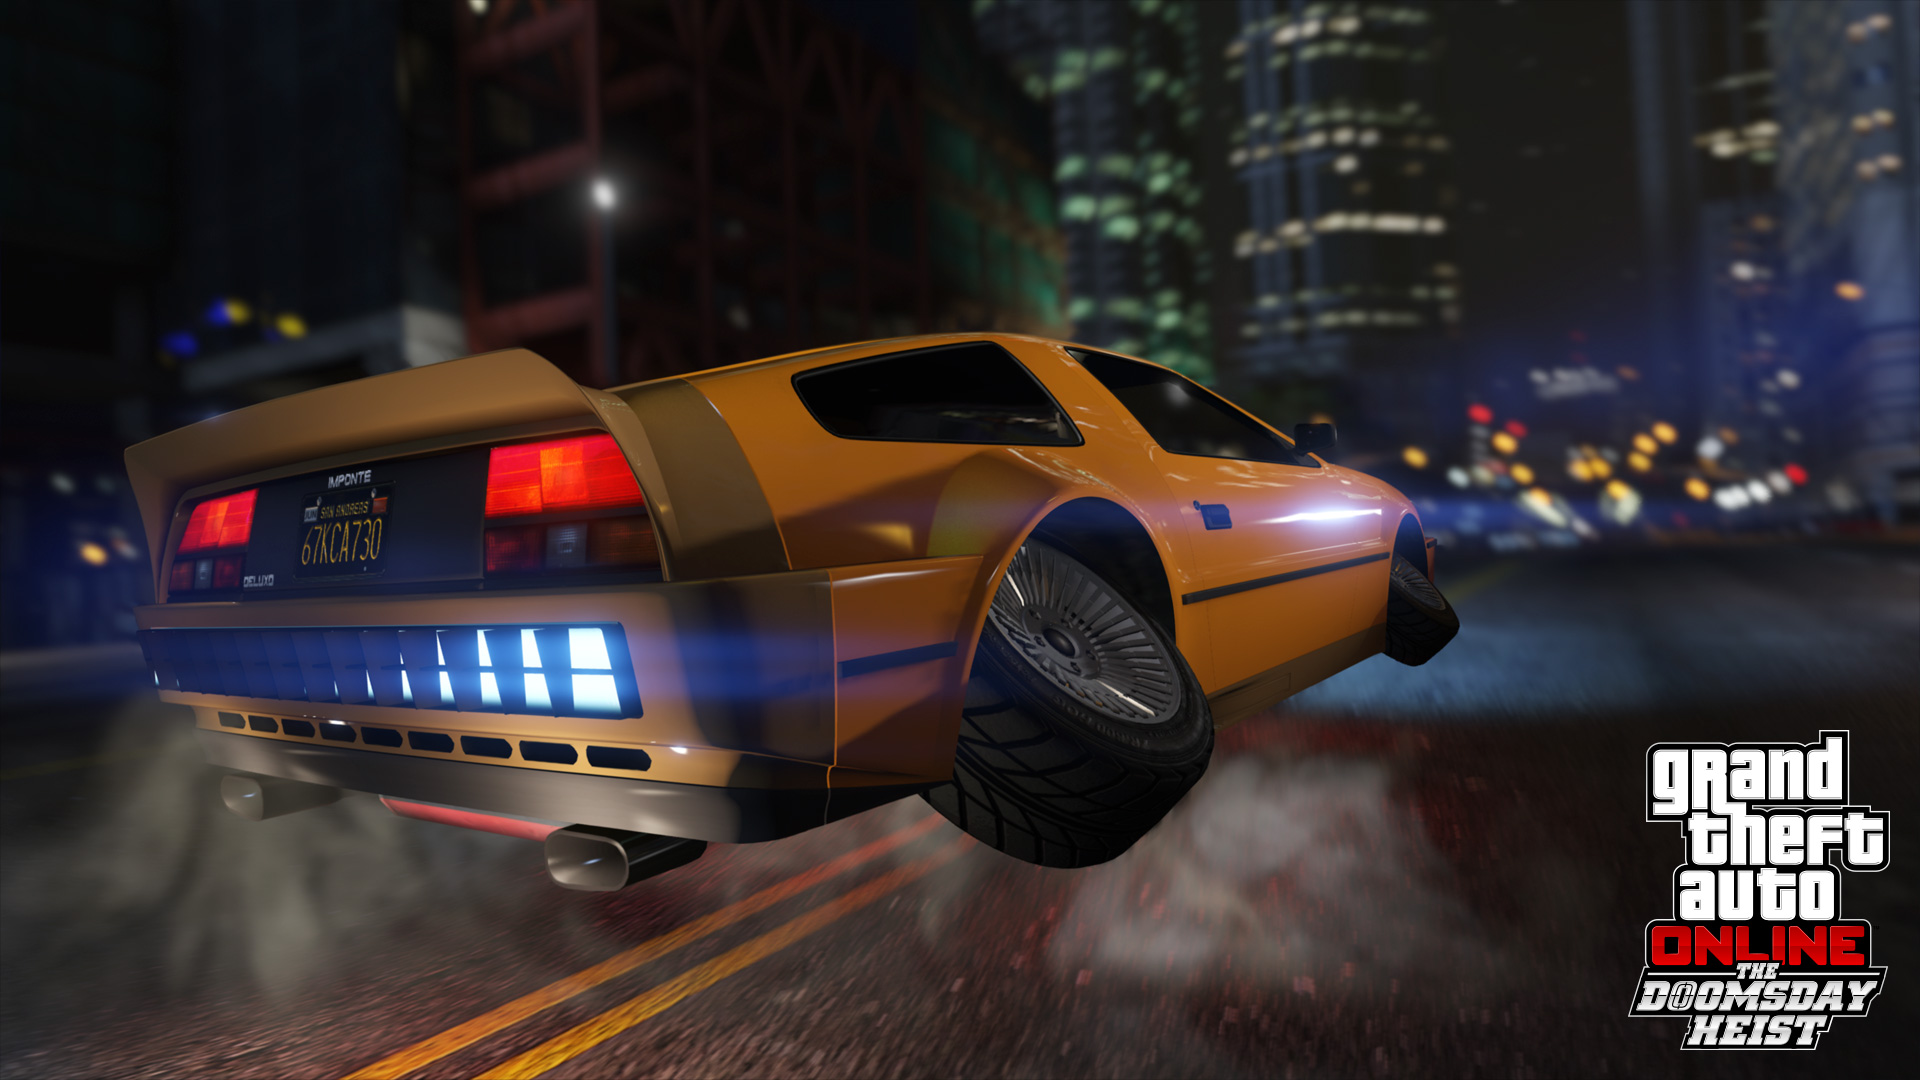 Grand Theft Auto V (GTA 5) System Requirements - Can I Run